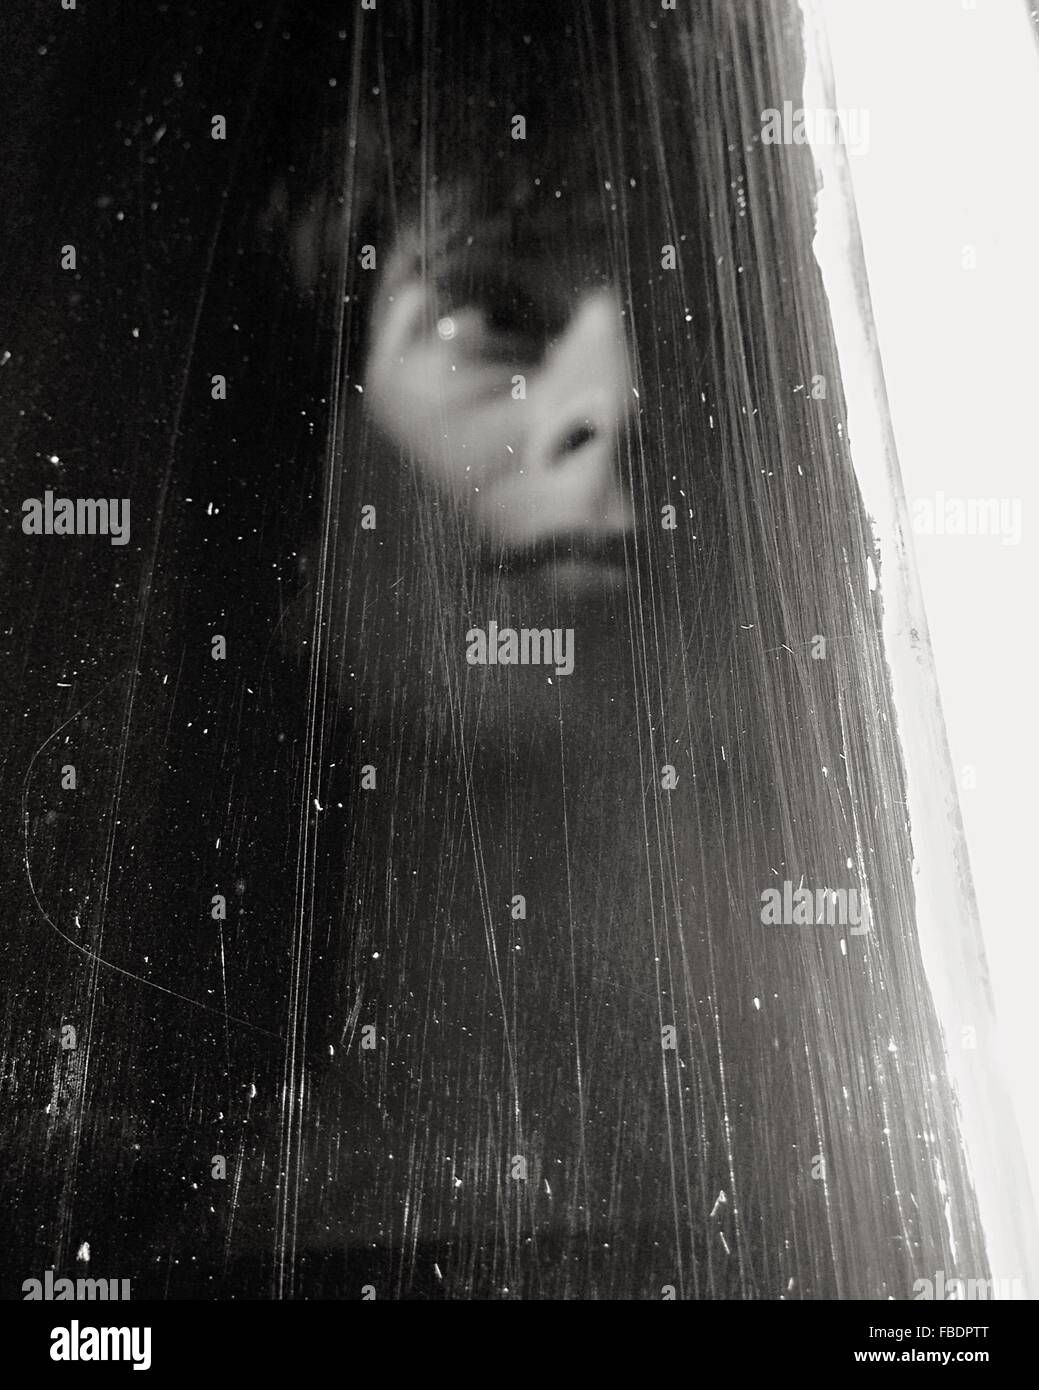 Woman Looking Out Window Photo Stock